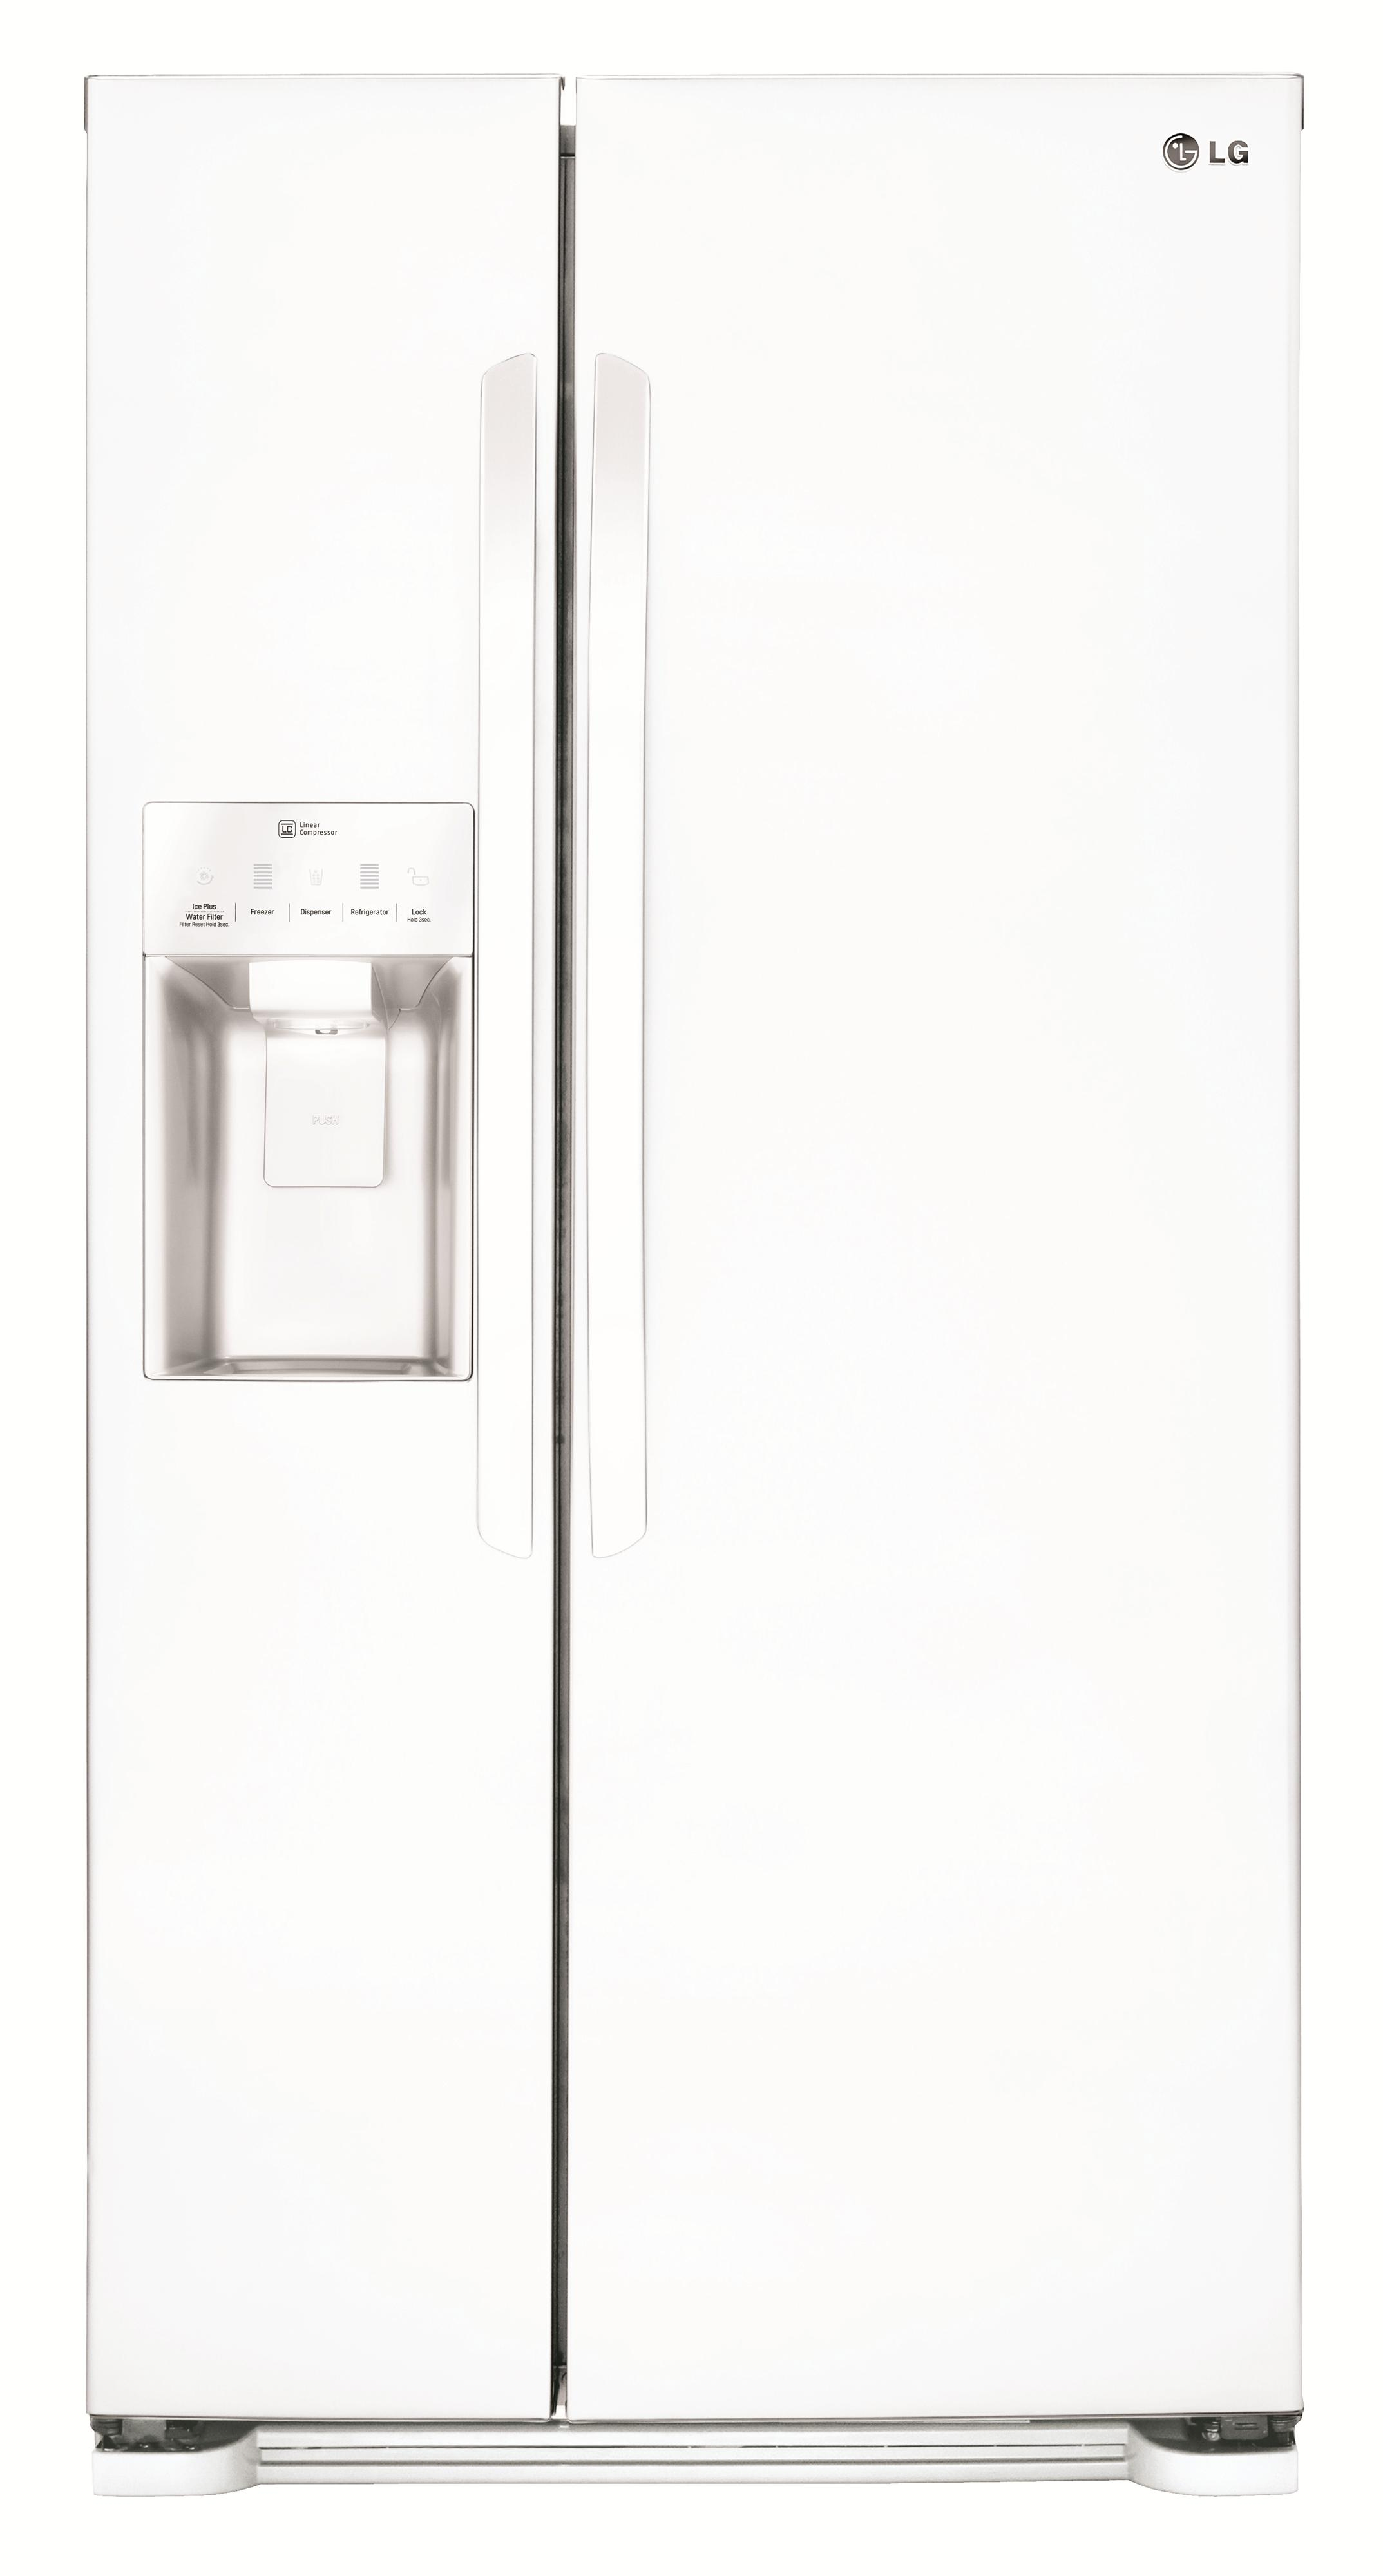 LG Appliances Side by Side Refrigerators 26 cu. ft. Side by Side Refrigerator - Item Number: LSXS26326W